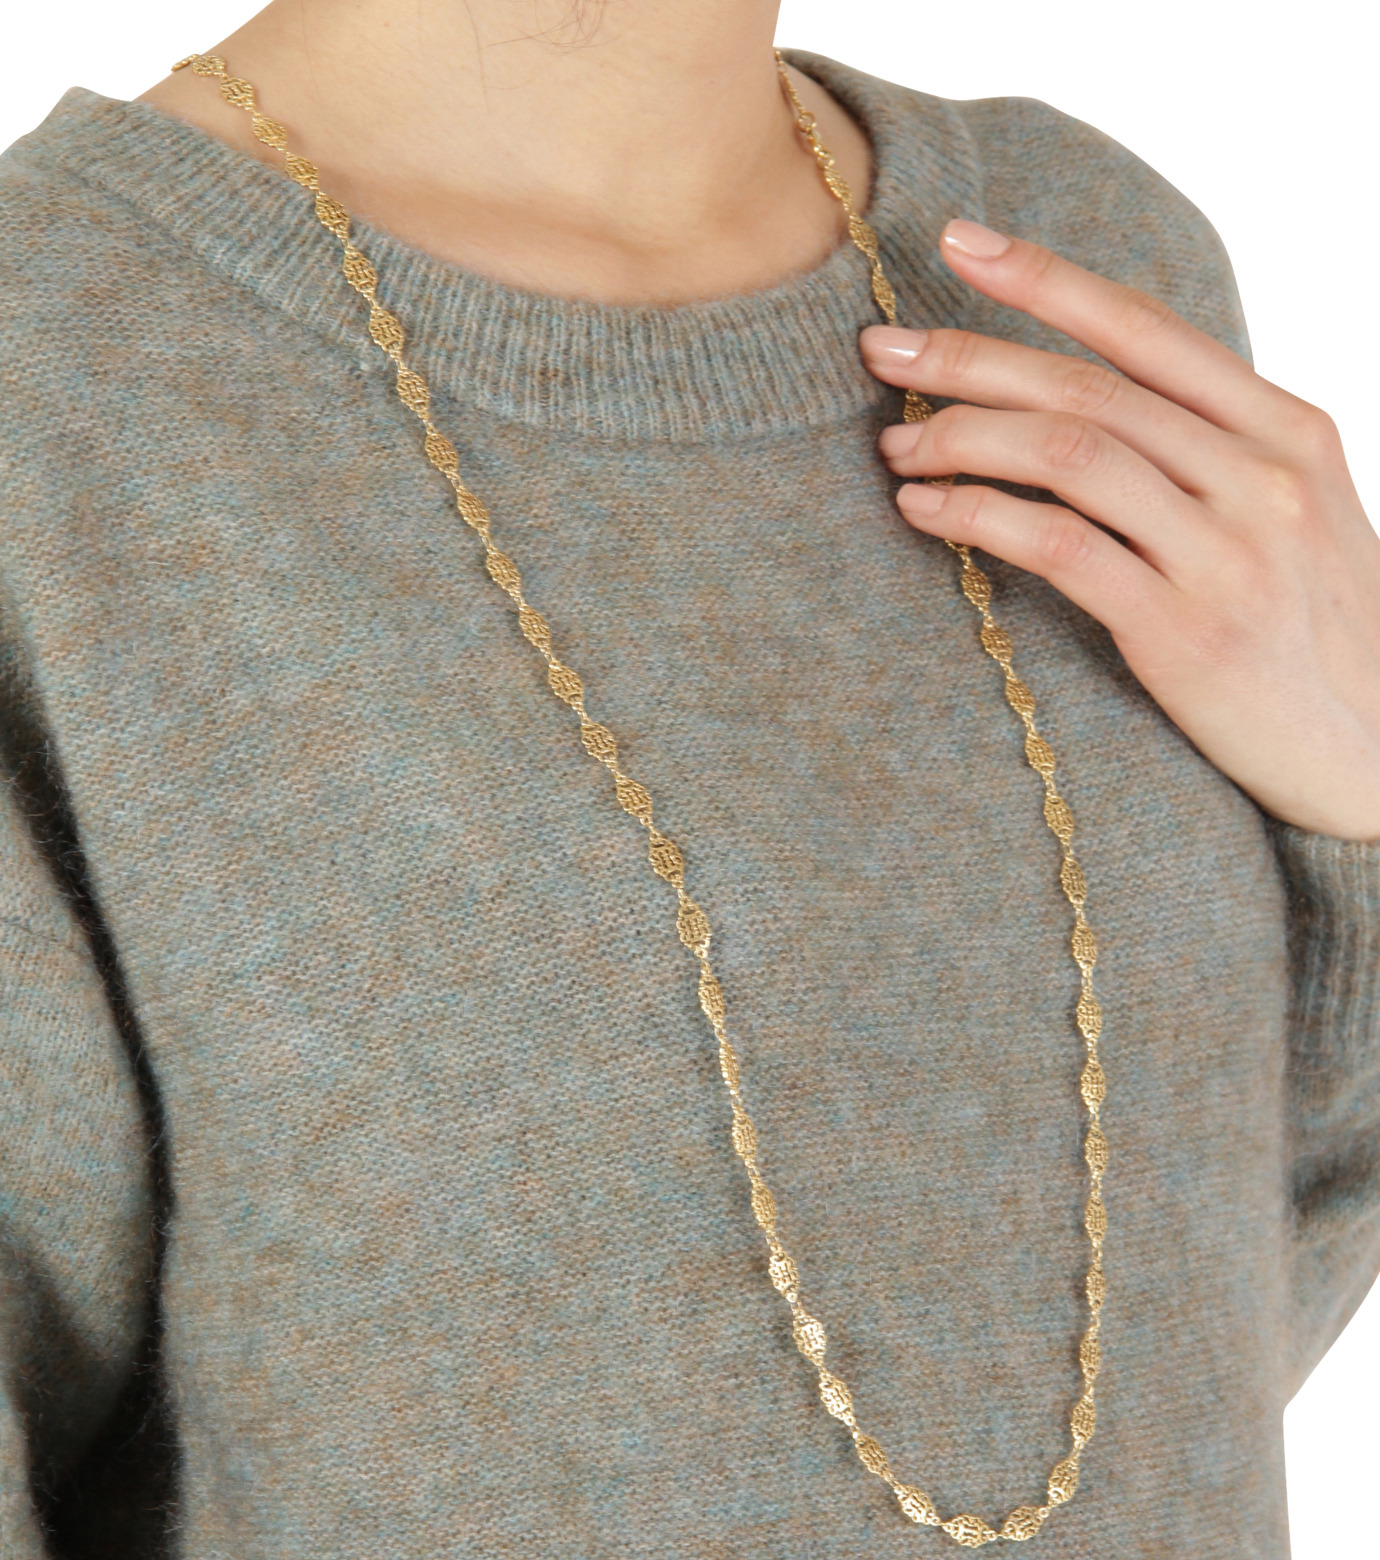 I AM by Ileana Makri(アイ アム バイ イリーナ マクリ)のAntoinette Single Necklace-GOLD(ネックレス/necklace)-O848-61-099-2 拡大詳細画像3